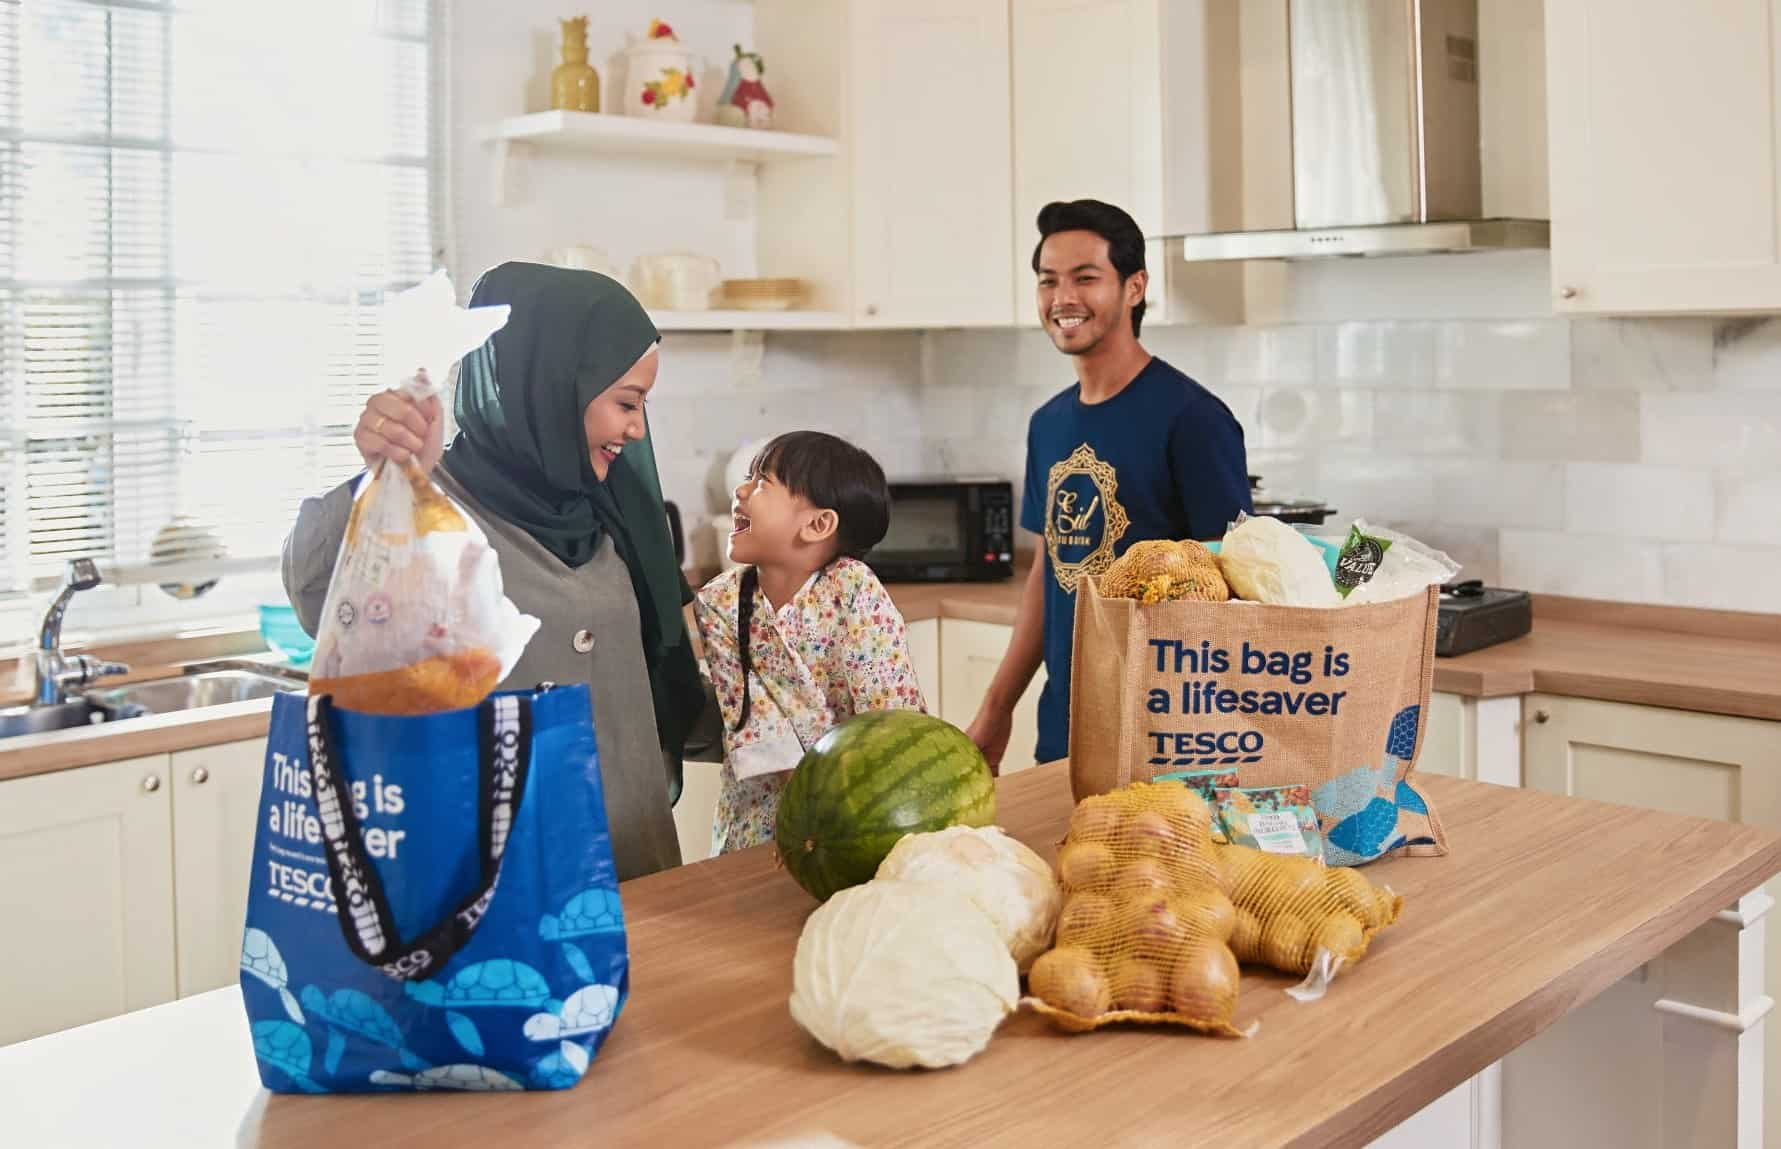 Spotlight on SMEs during Tesco Malaysia's Campaign